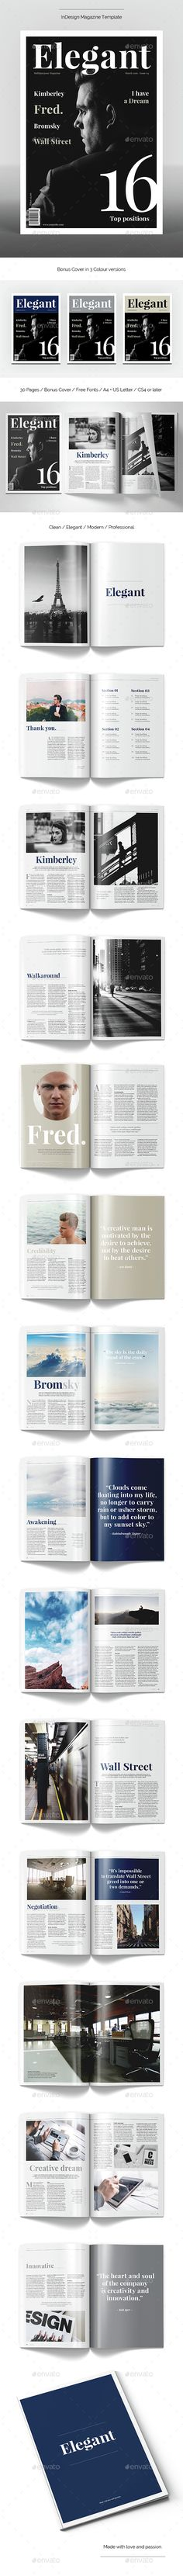 Elegant Magazine Template — InDesign INDD #multipurpose #fashion • Available here → https://graphicriver.net/item/elegant-magazine-template/15322812?ref=pxcr